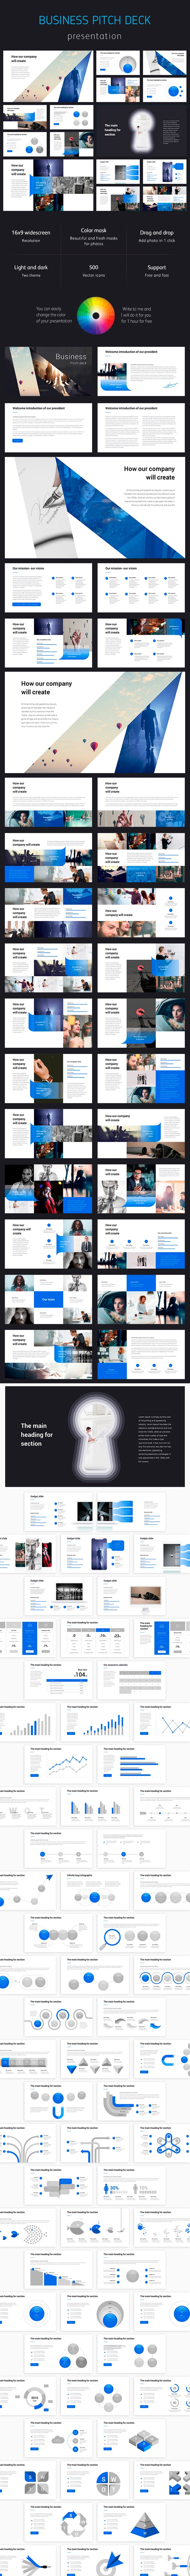 Business Pitch Deck Powerpoint - Pitch Deck PowerPoint Templates